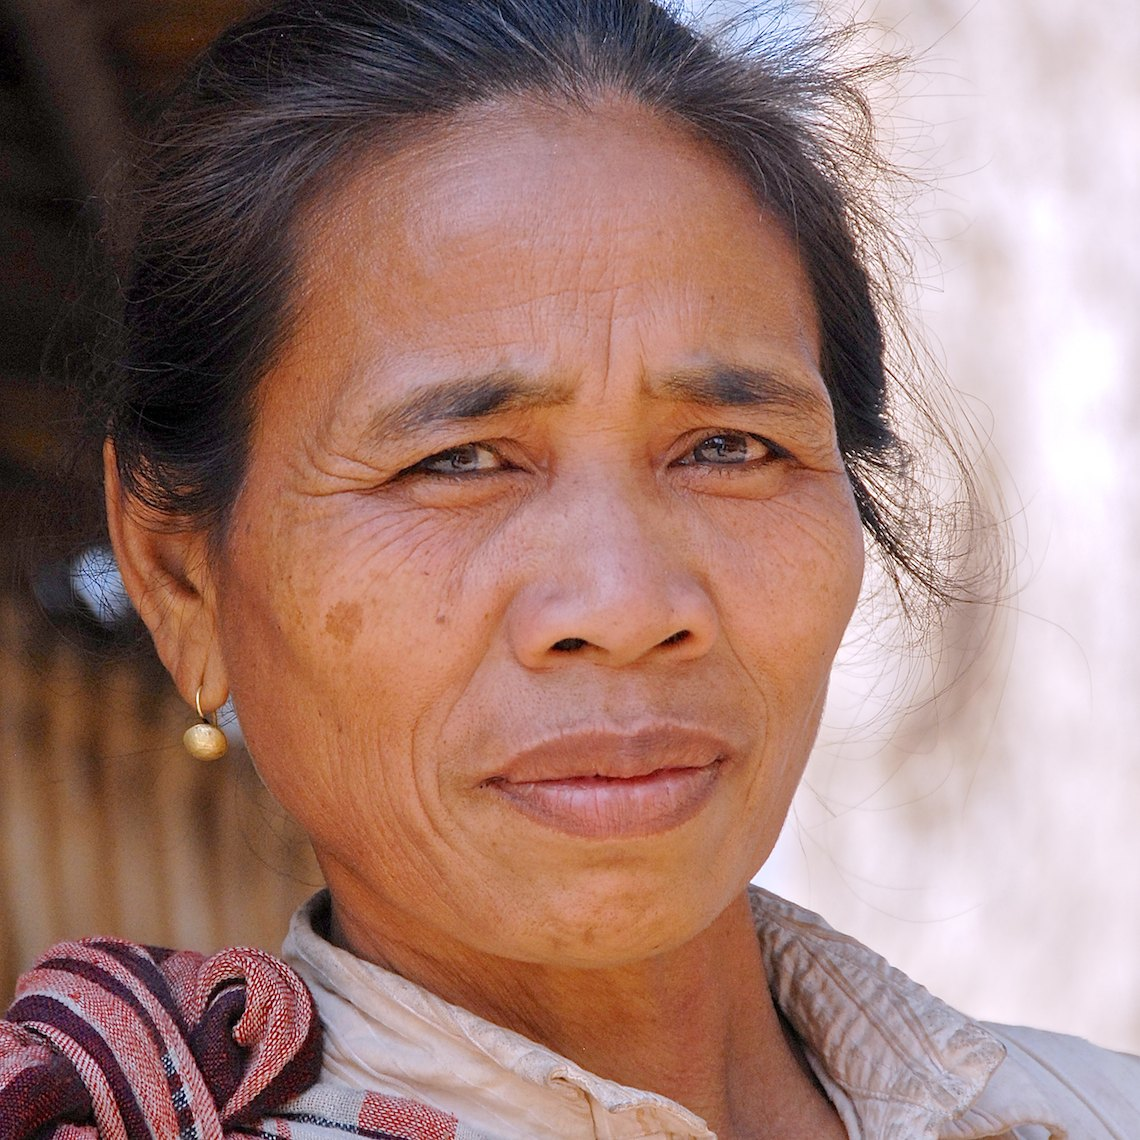 Barth_Laos_woman 001.jpg